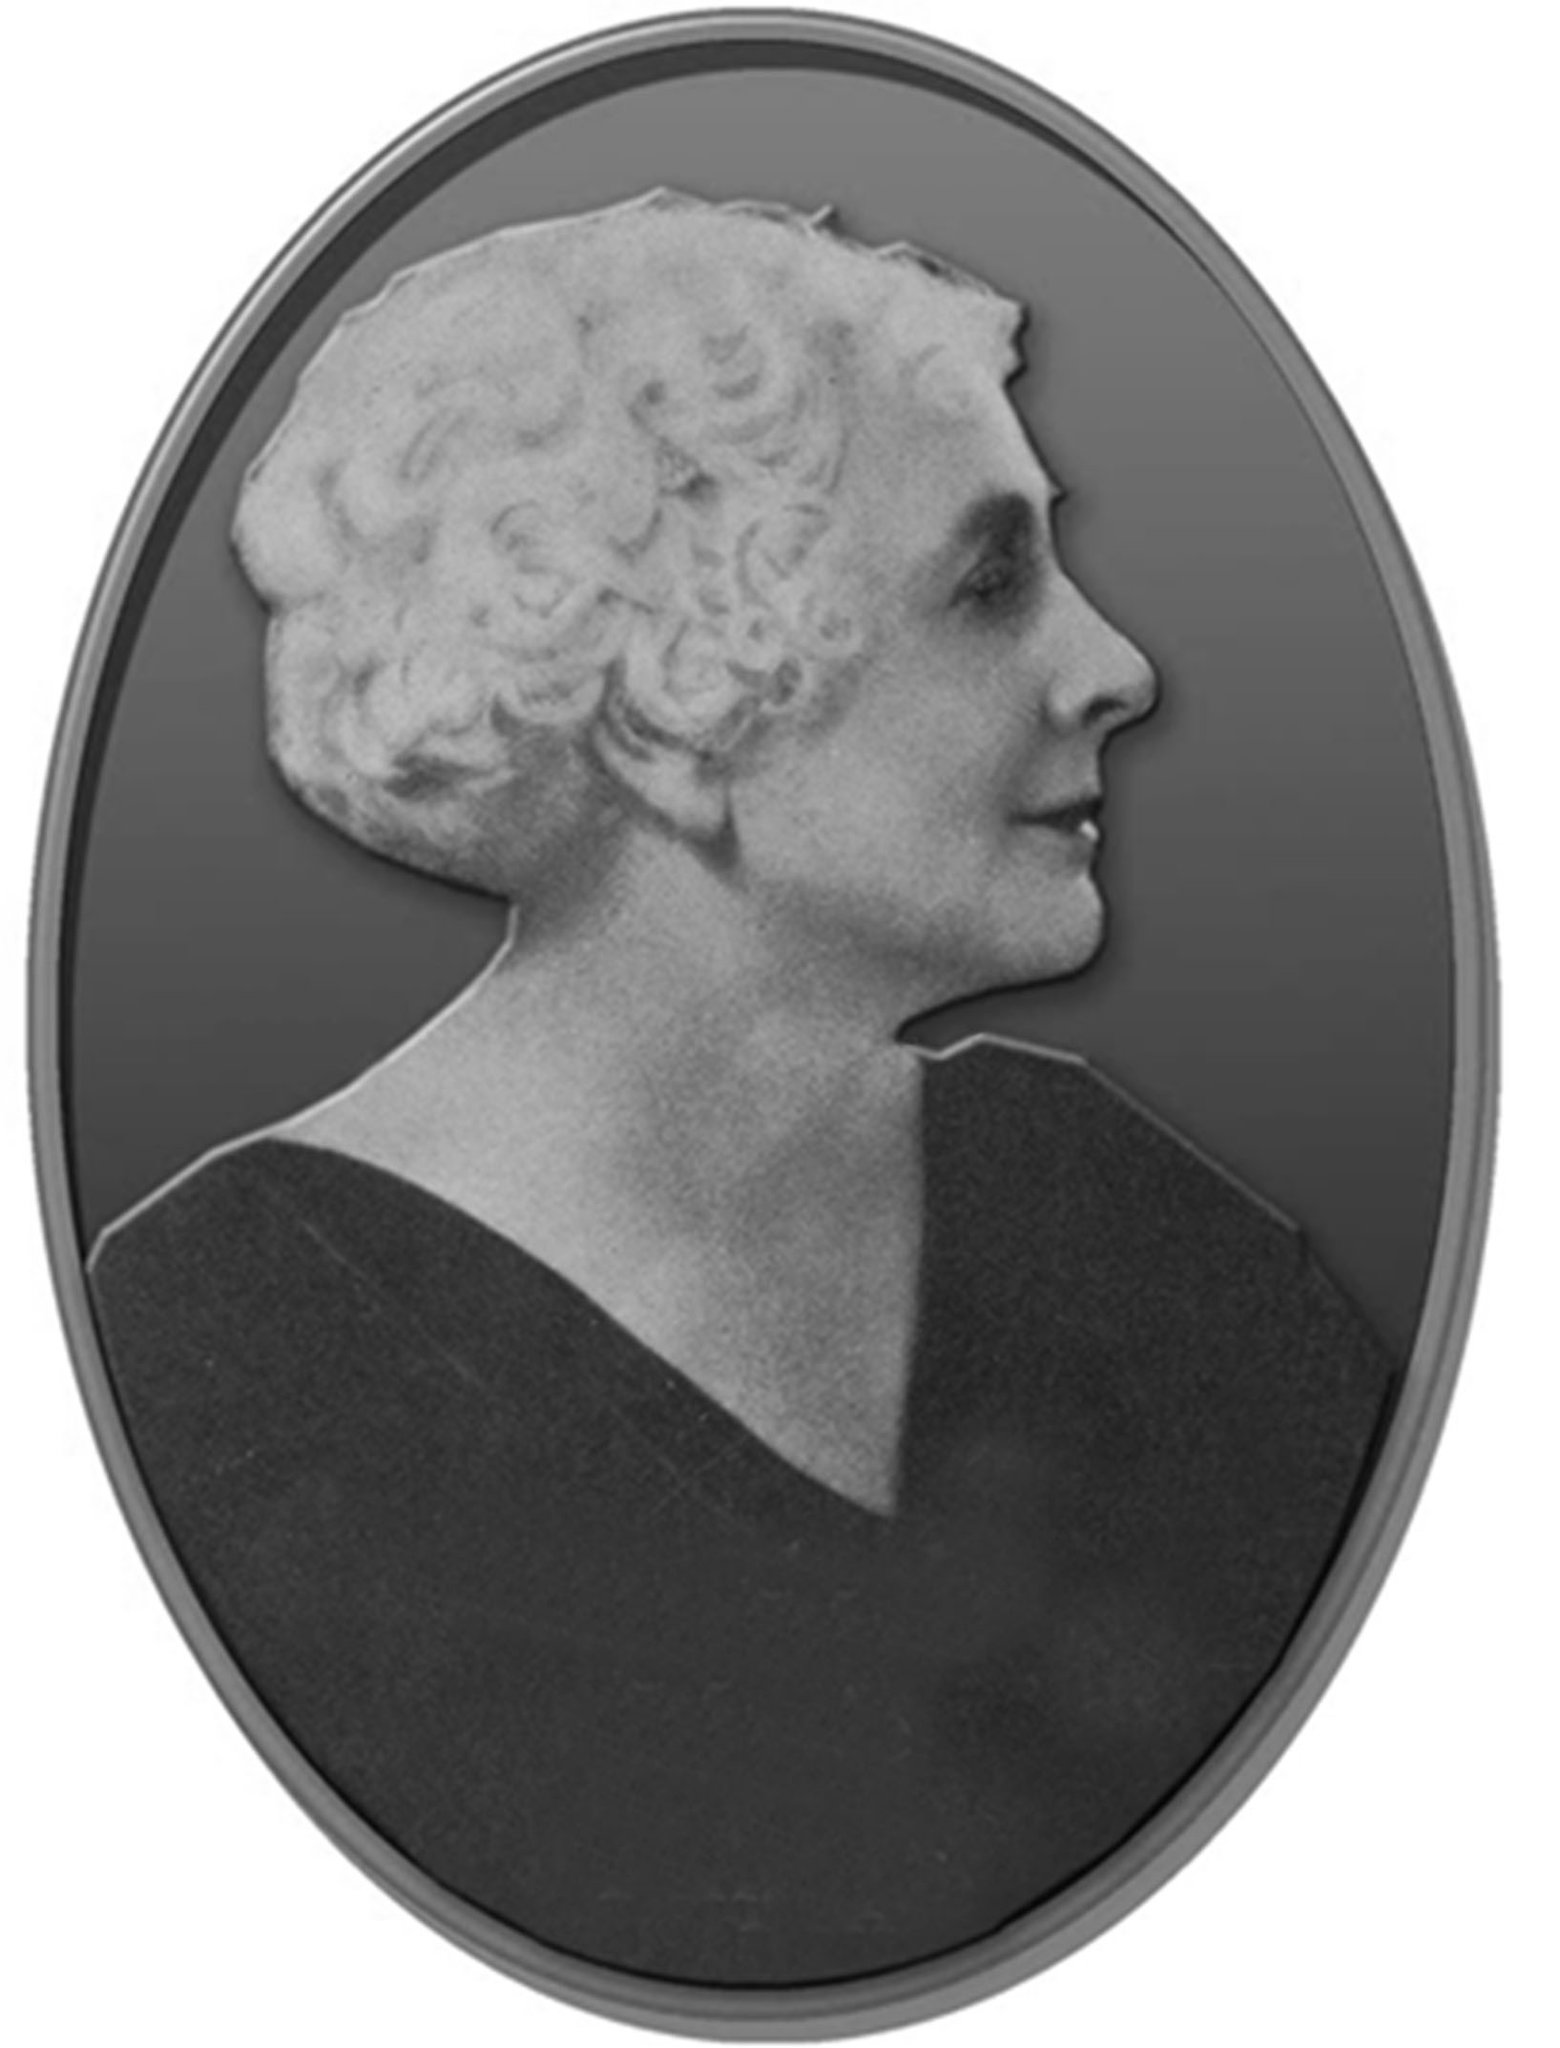 For a long time, the game Monopoly was attributed to a man in the 1930's; however, progressive and feminist Lizzie Magie actually invented the game in 1903. Originally called the Landlord's Game, she aimed to demonstrate the danger of monopolies and leftist economic thought.